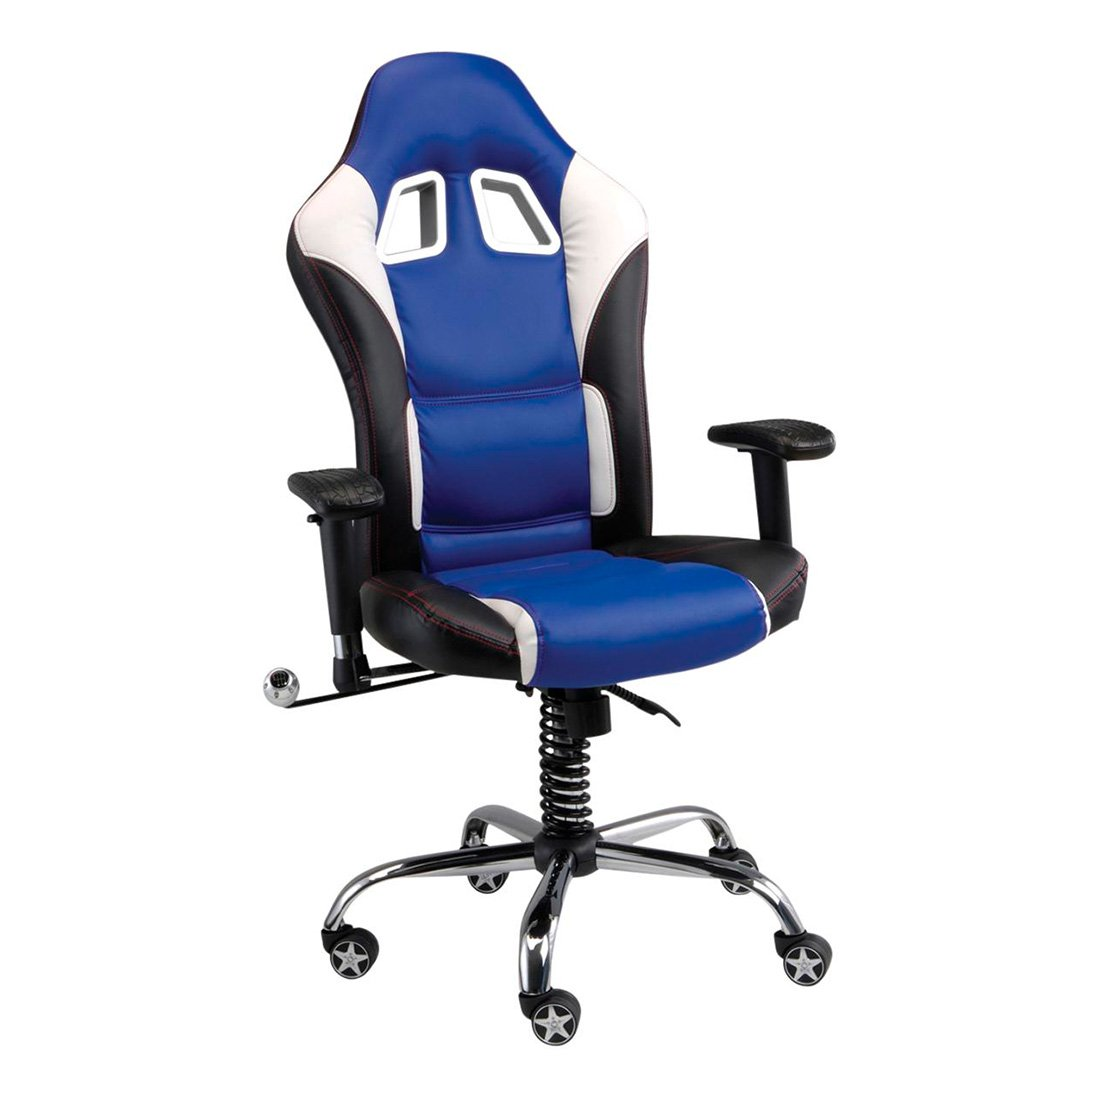 PitStop Furniture IN1100N SE Office Chair (Navy)